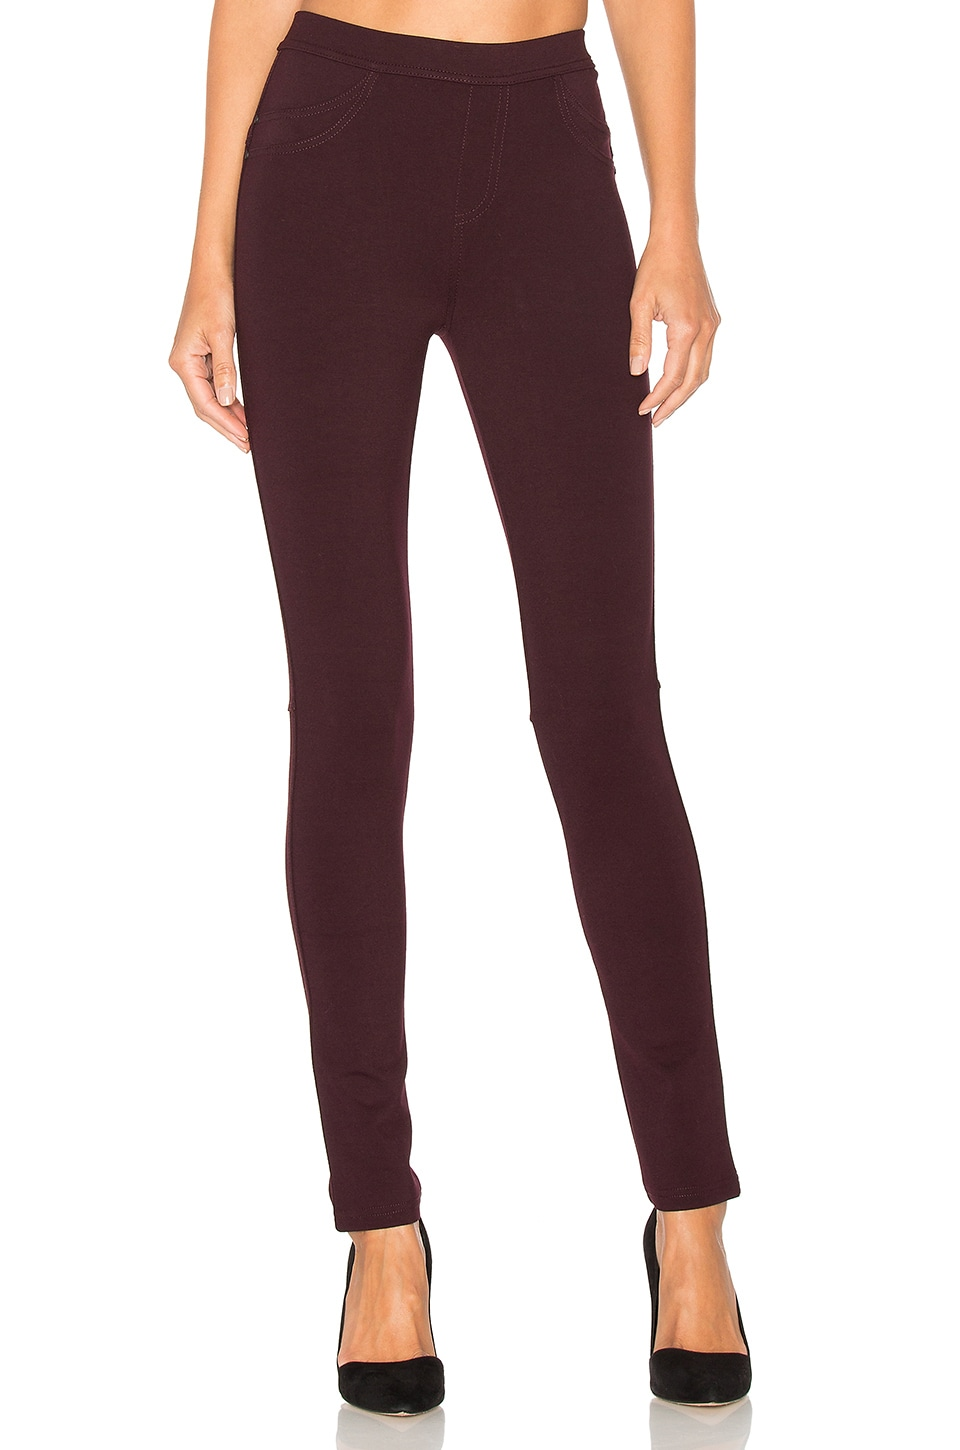 Grease Legging by Sanctuary